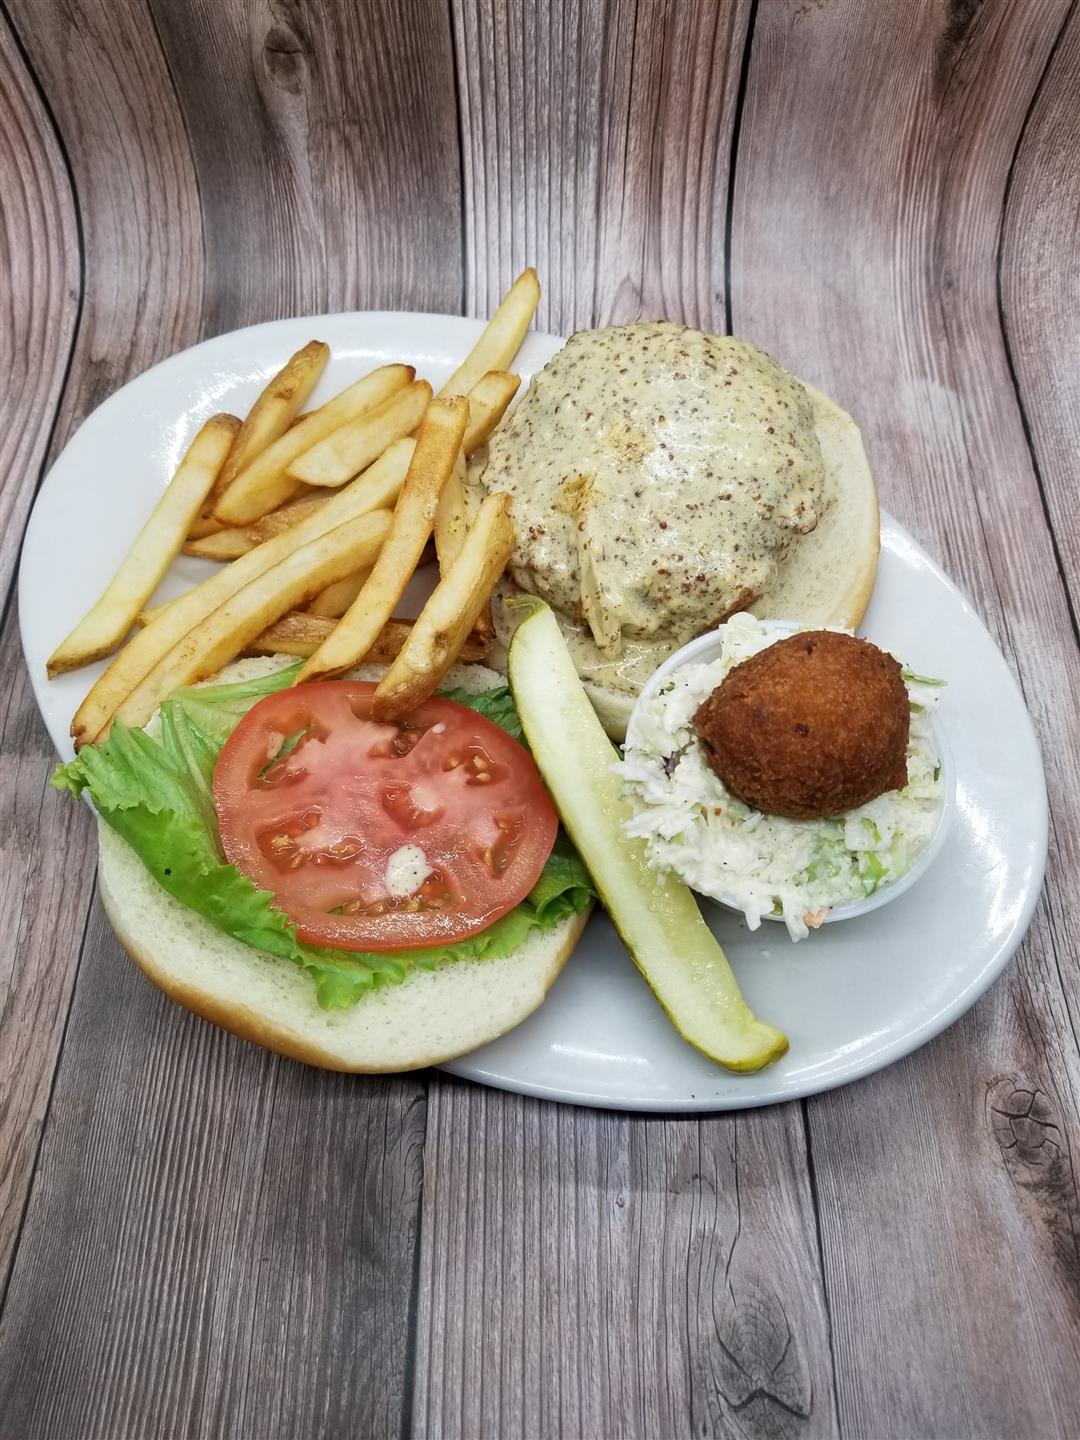 Lunch Crab Cake Sandwich with Regular Fries